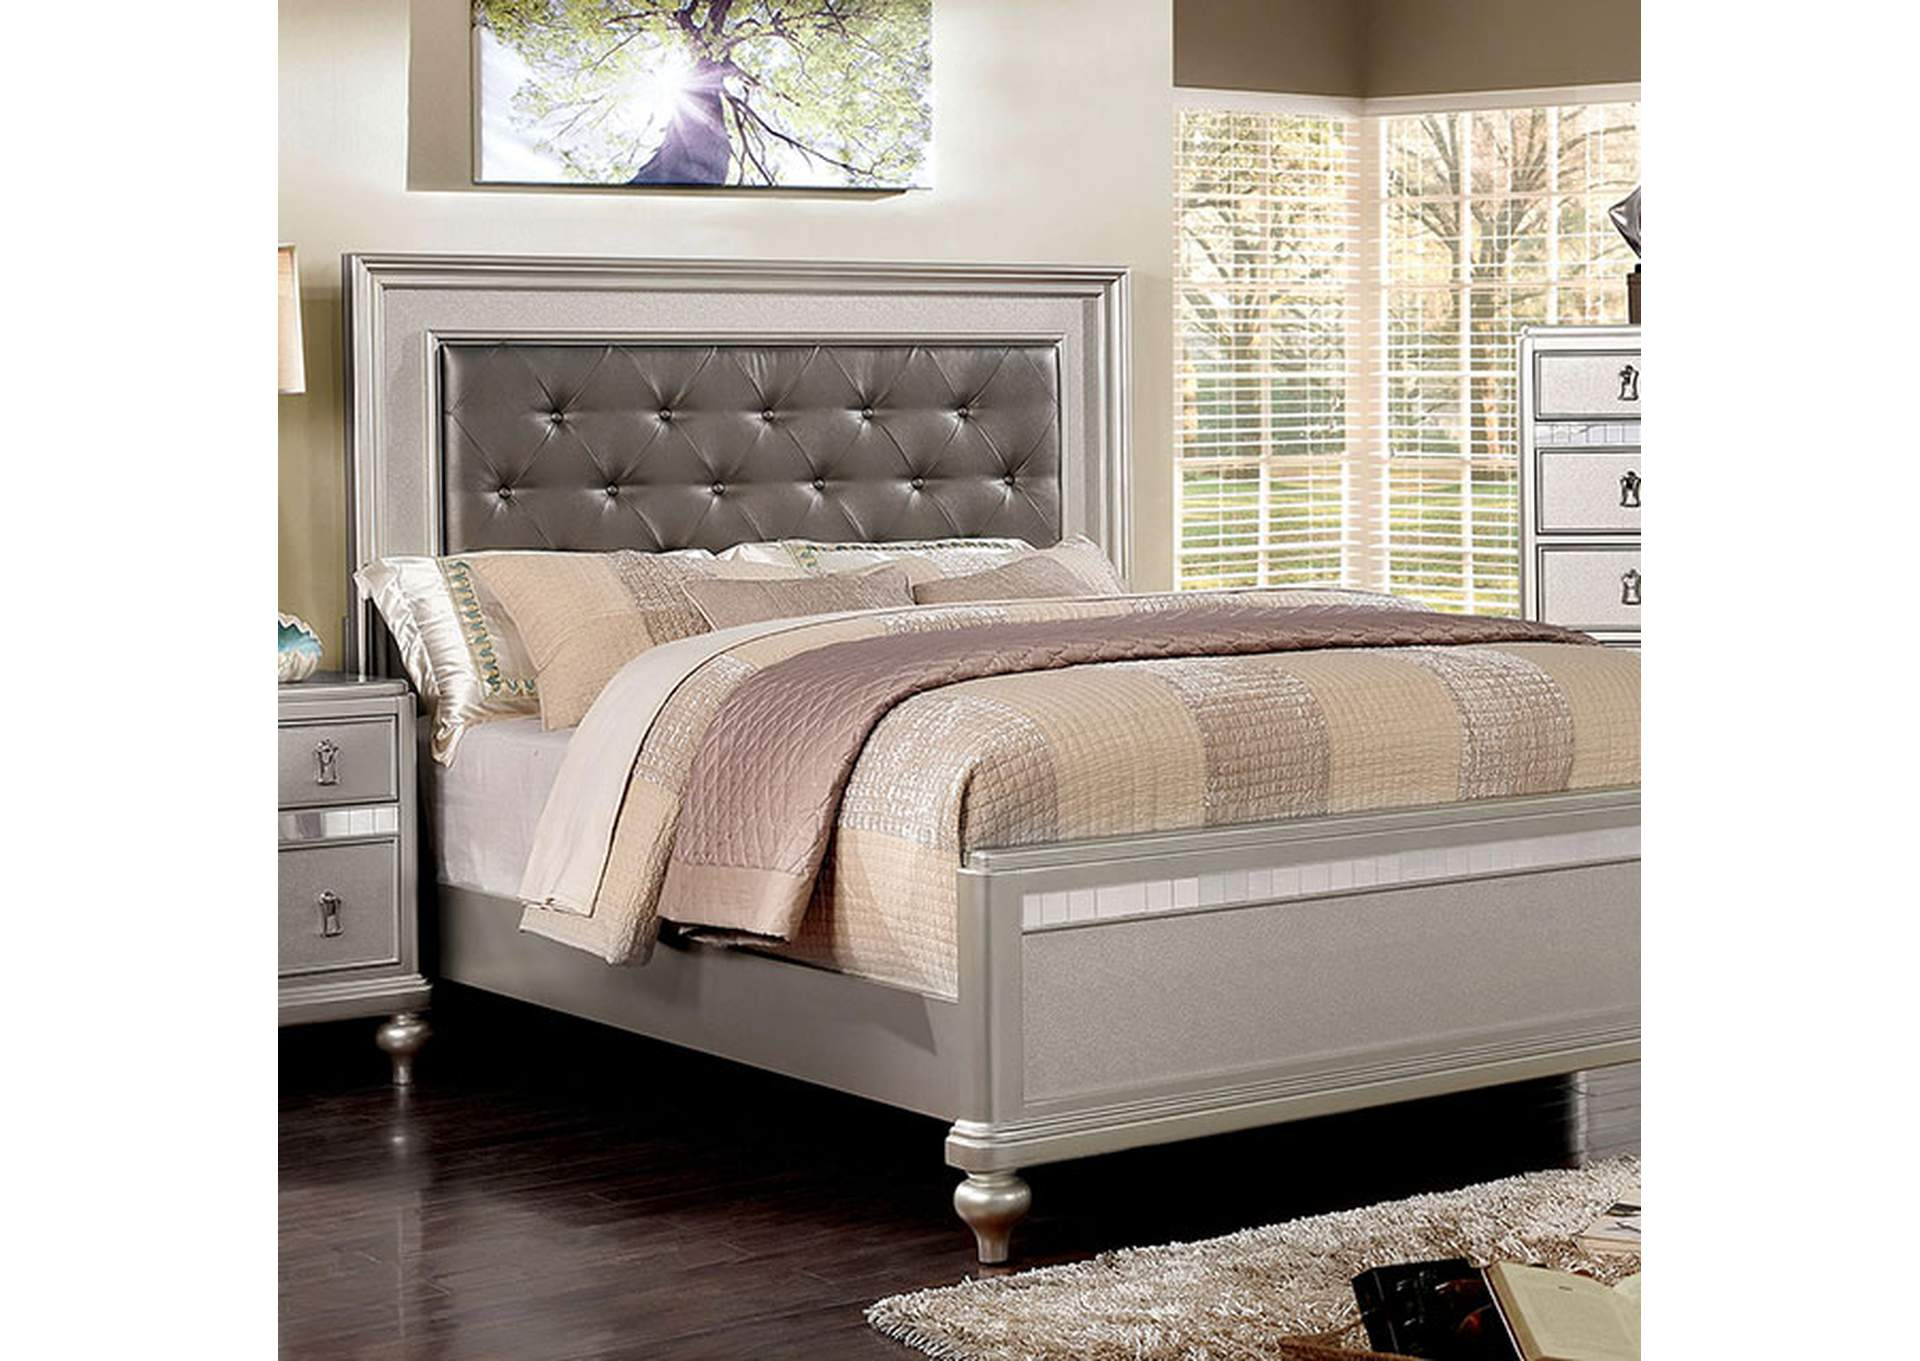 Avior Queen Bed,Furniture of America